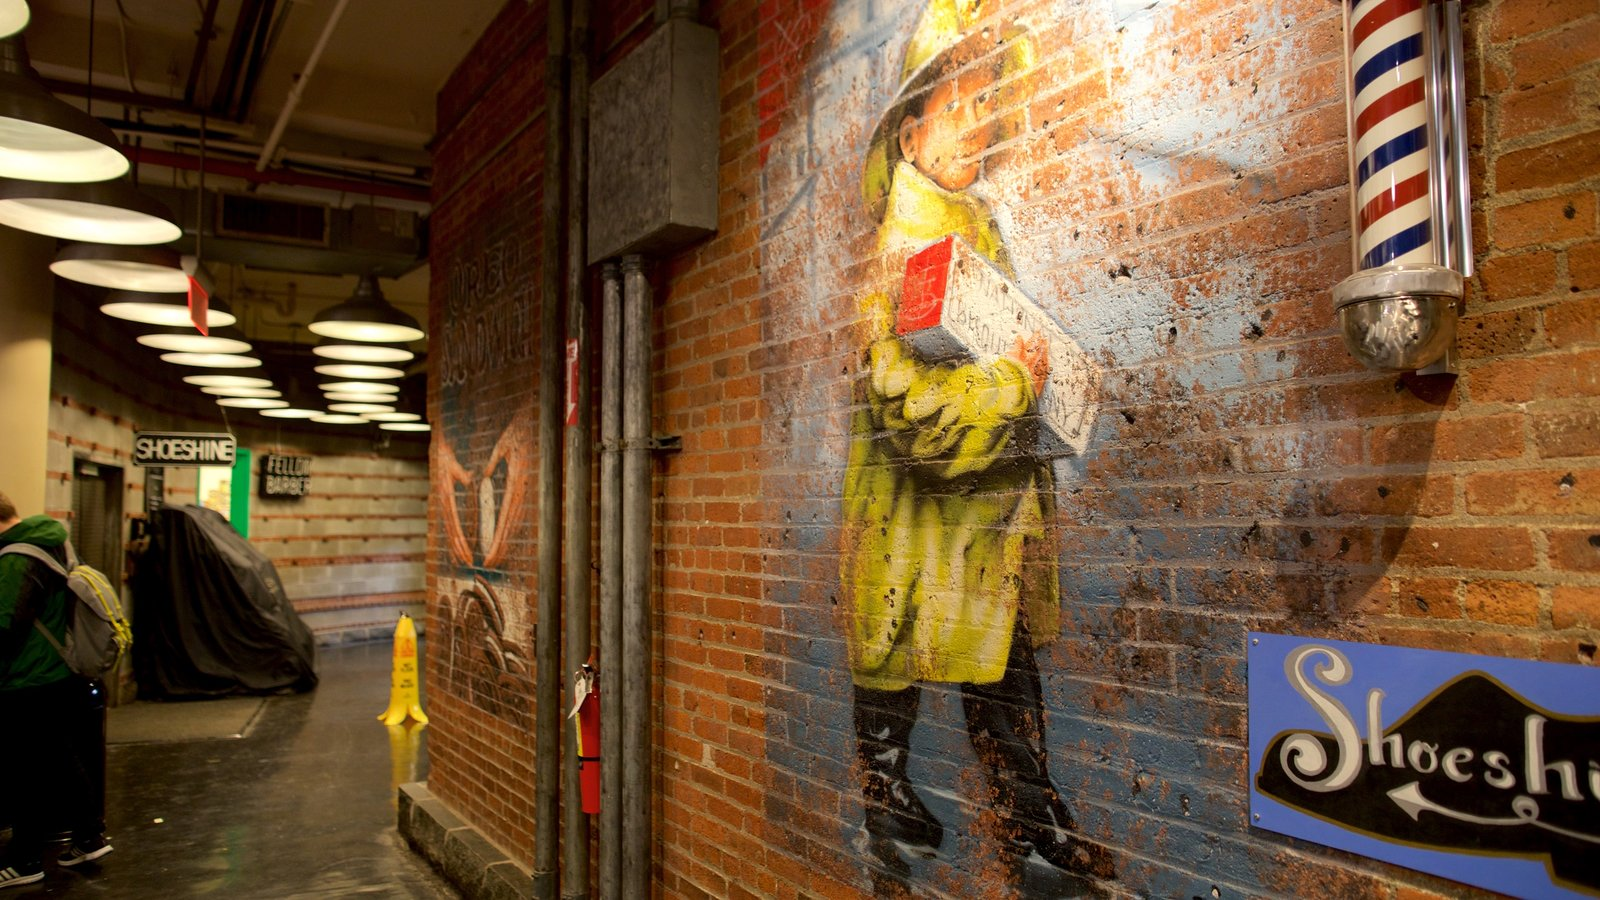 Chelsea Market showing art and interior views